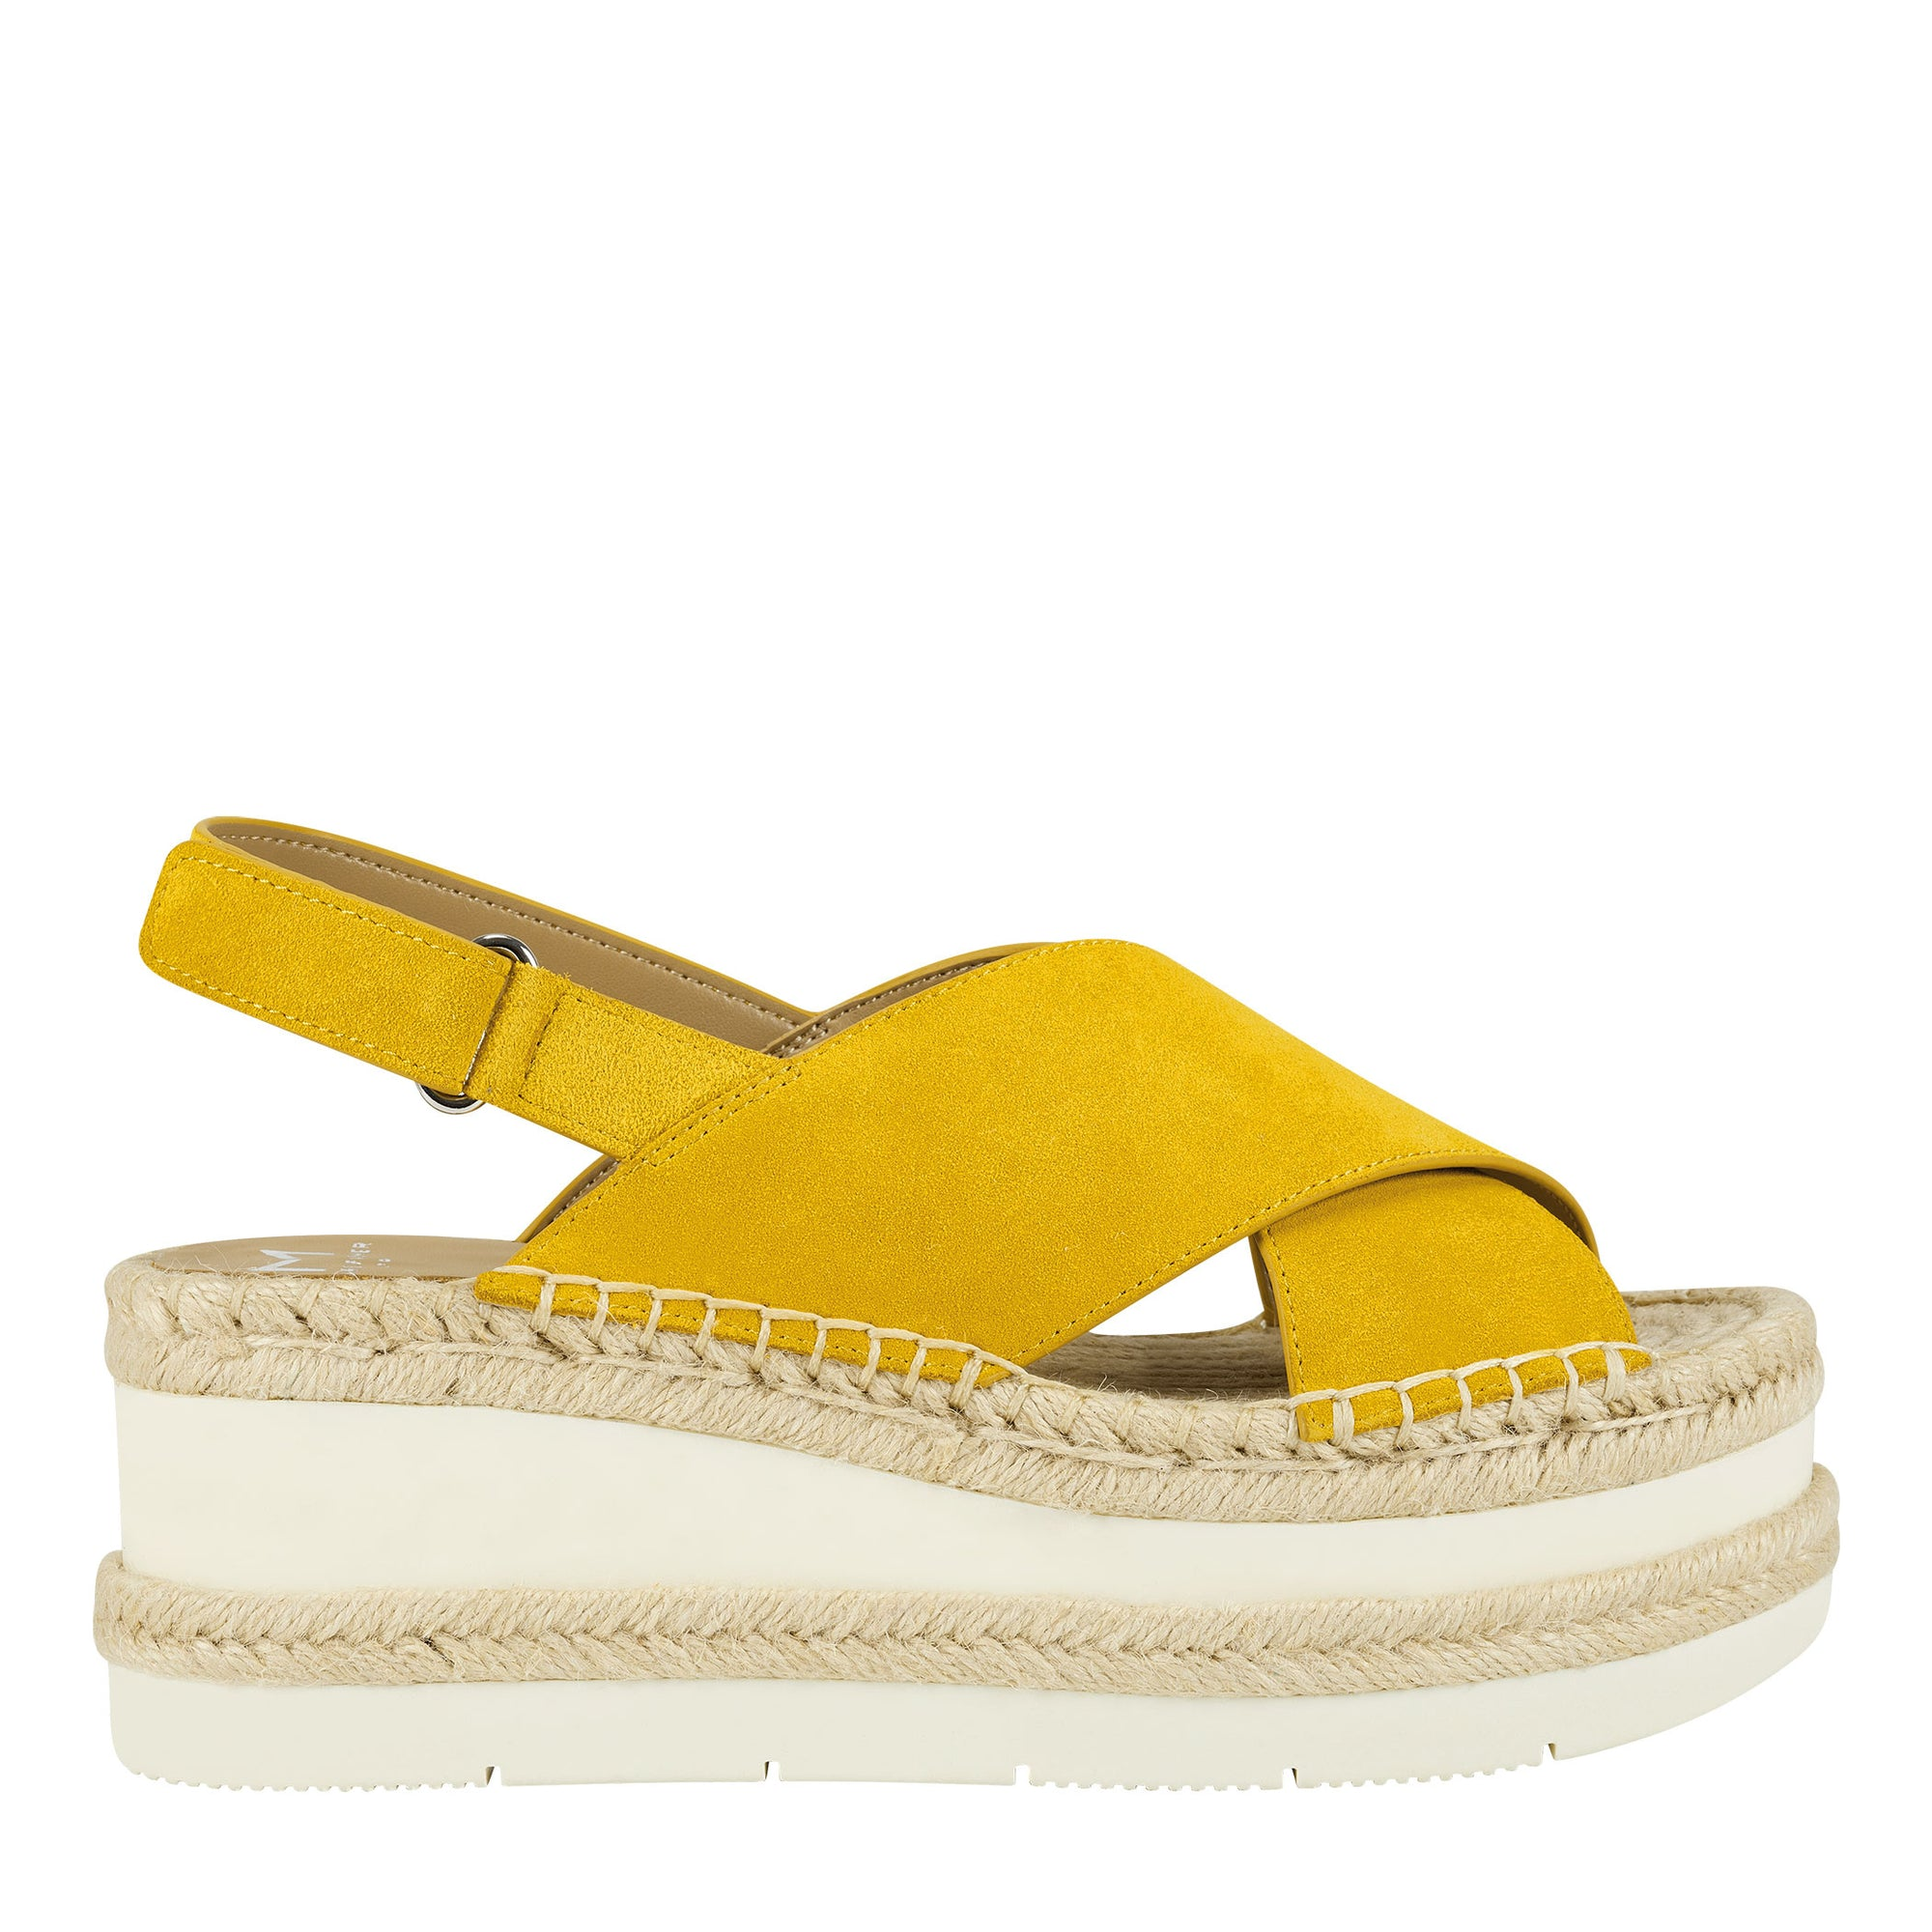 gandy-espadrille-wedge-sandal-in-yellow-suede